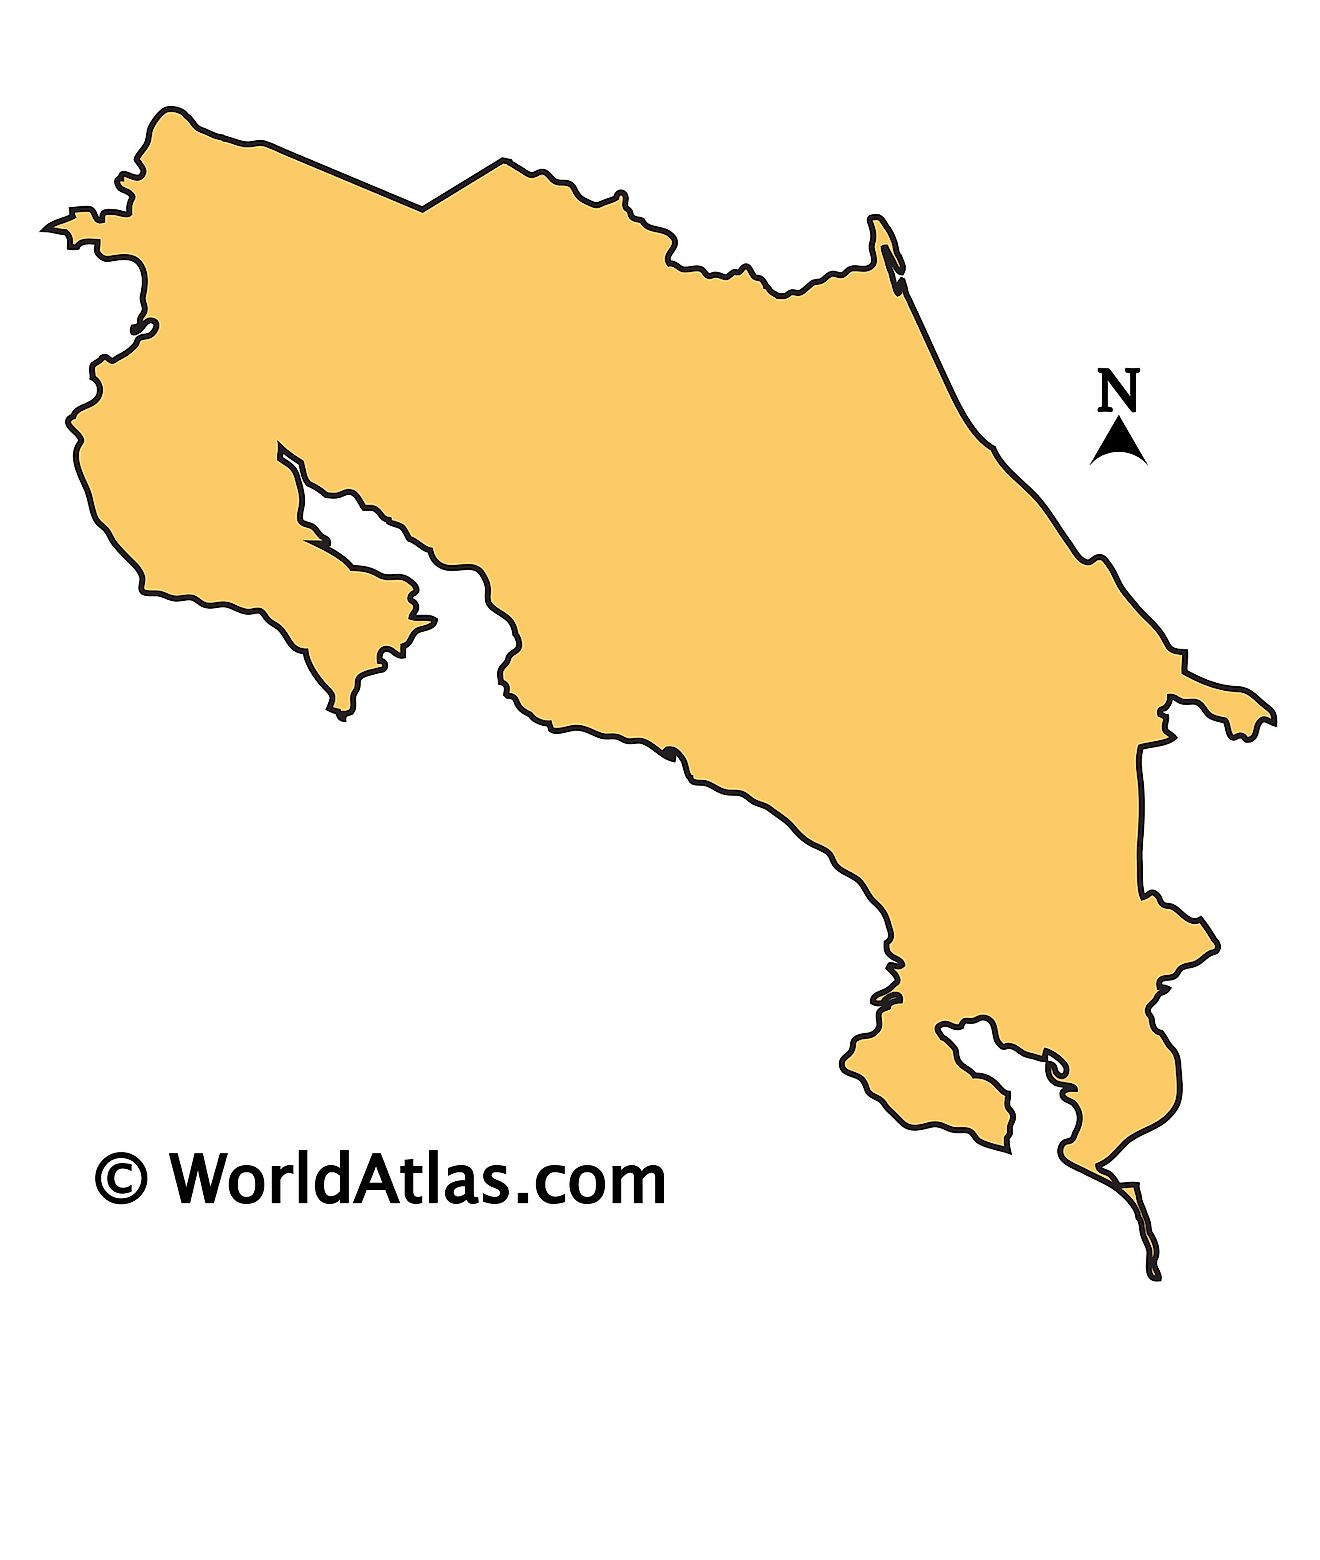 Outline Map of Costa Rica